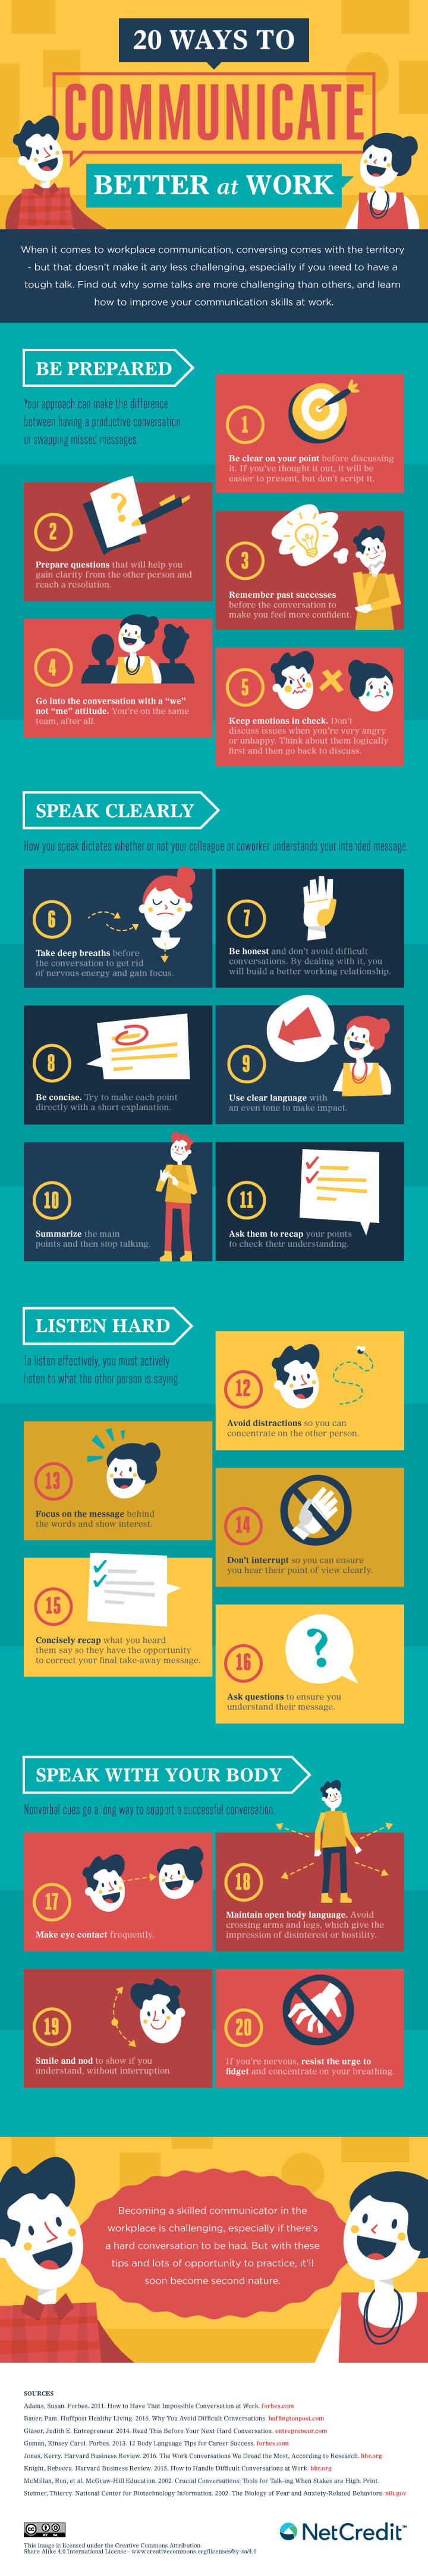 20 Ways to Communicate Better at Work Infographic